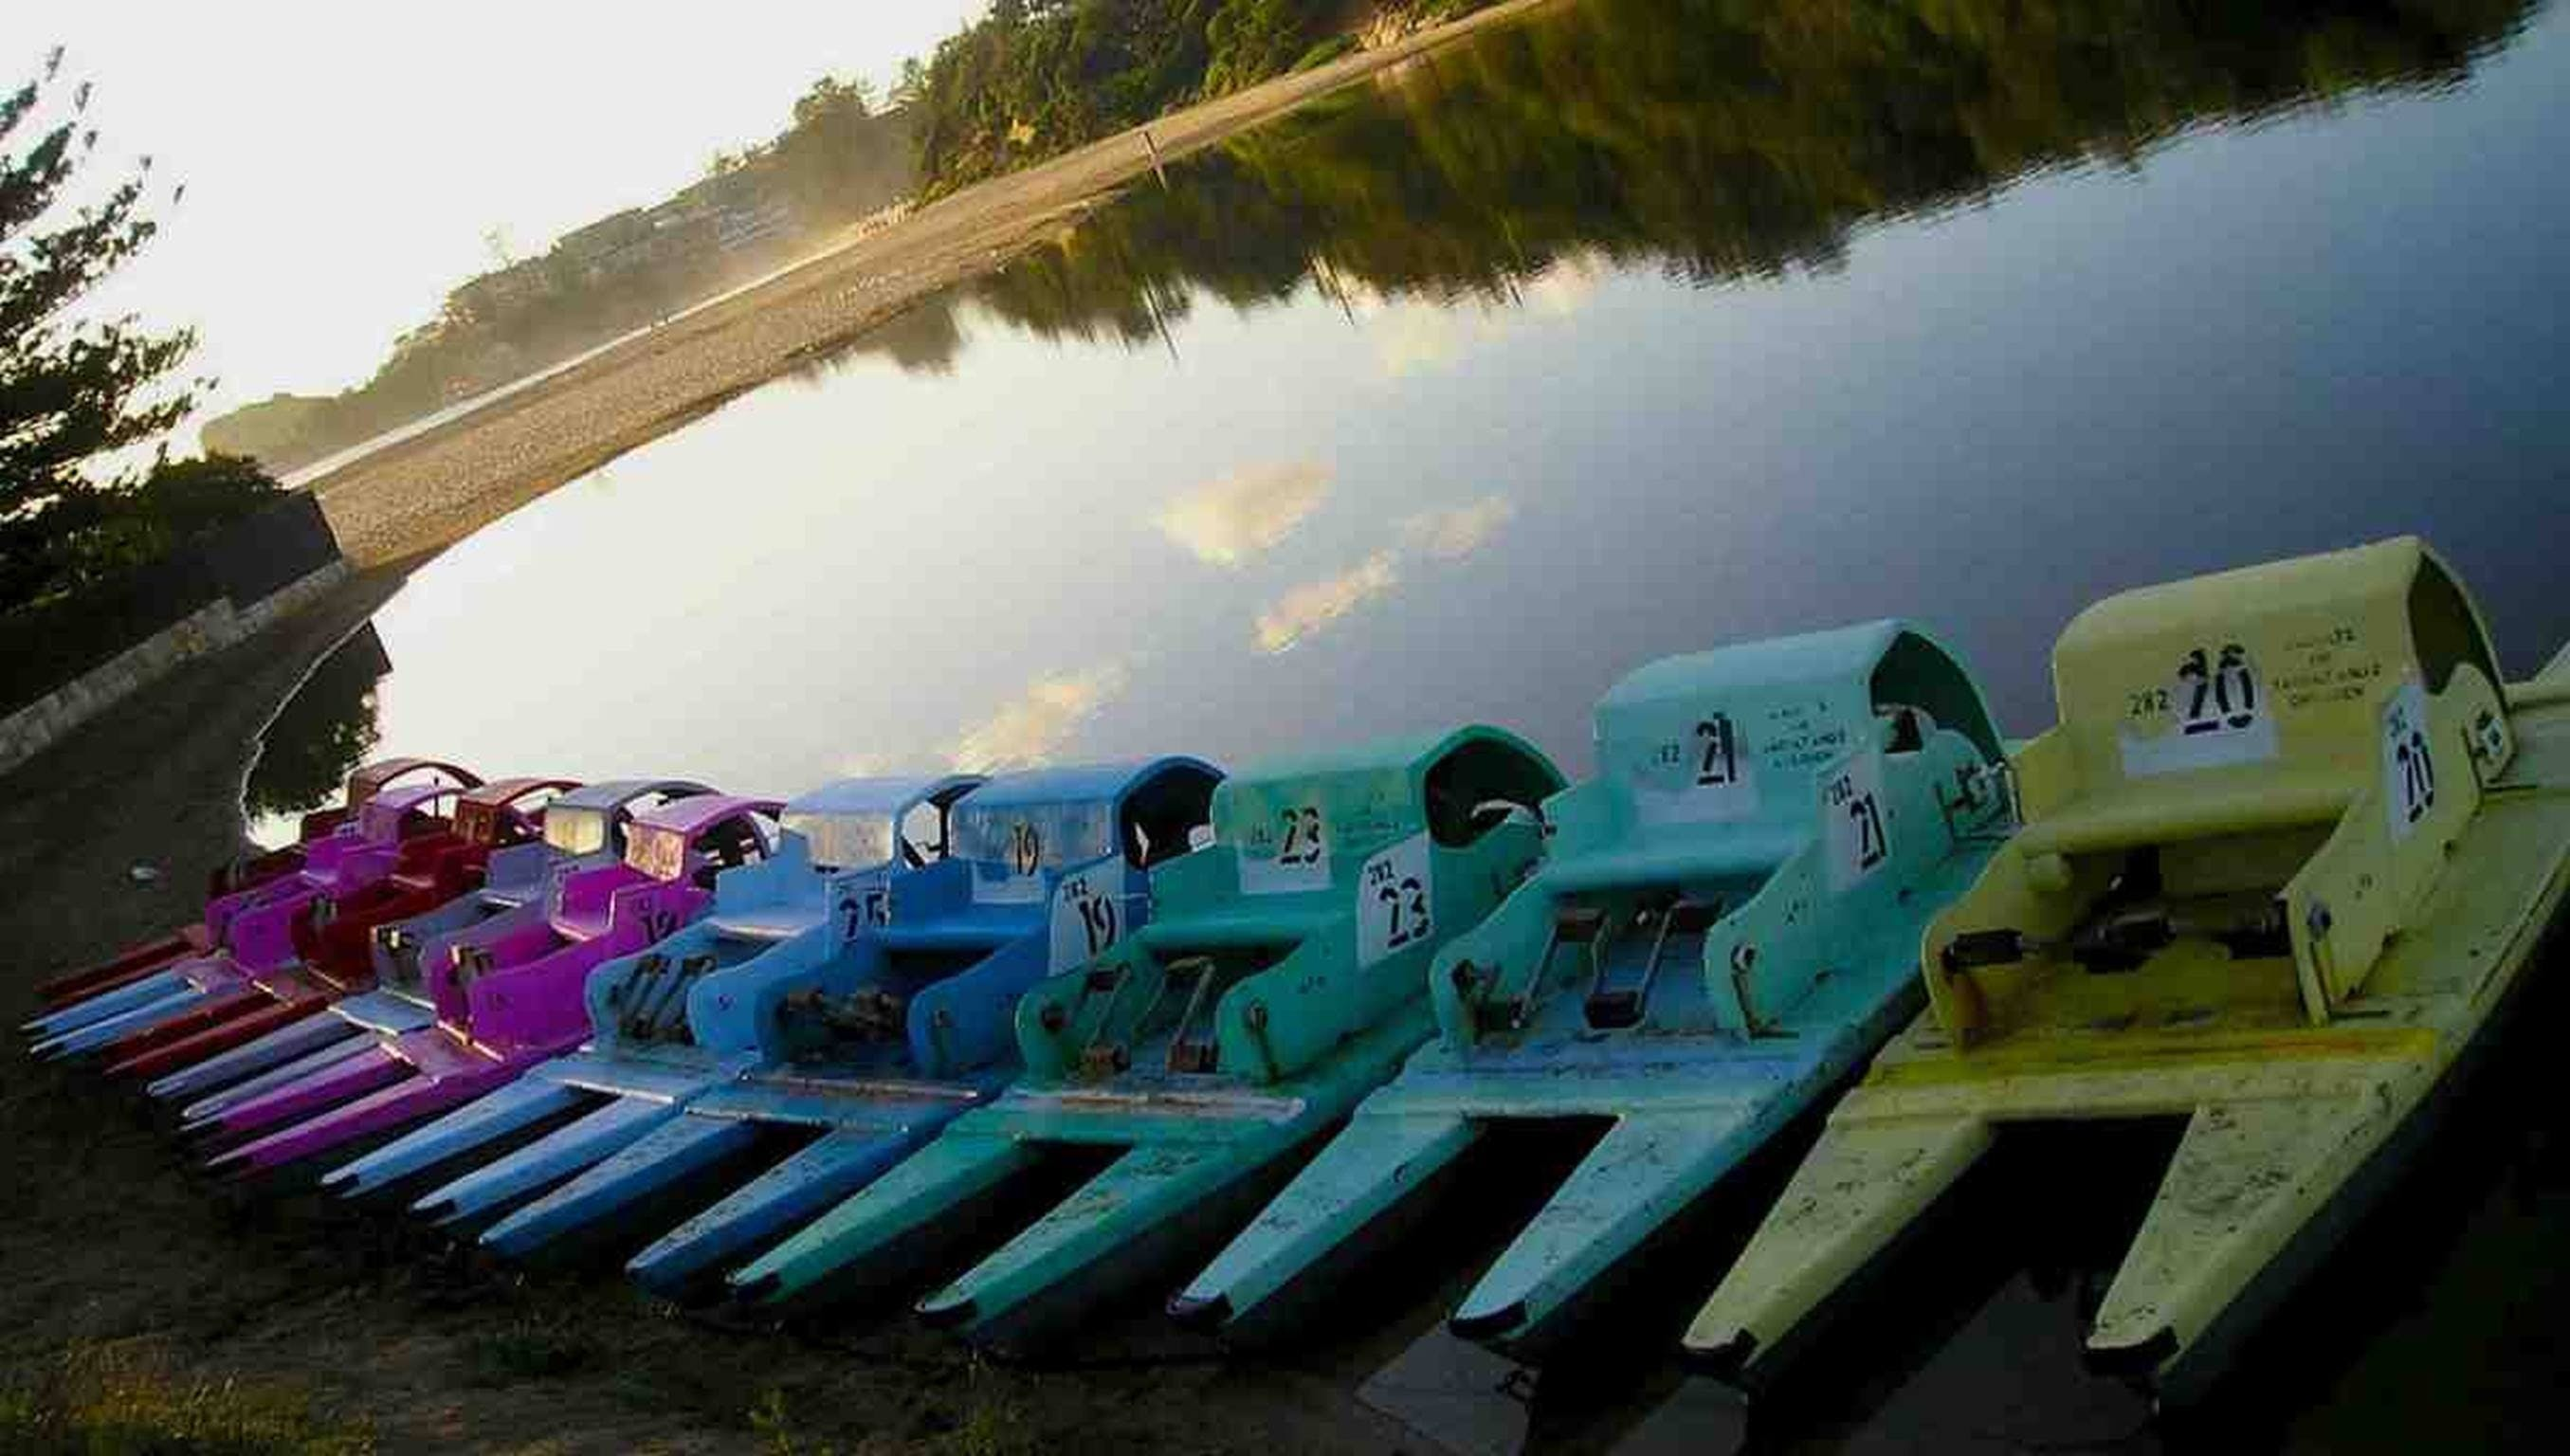 Terrigal Paddle Boats and Stand Up Paddle Boards - Accommodation Mermaid Beach